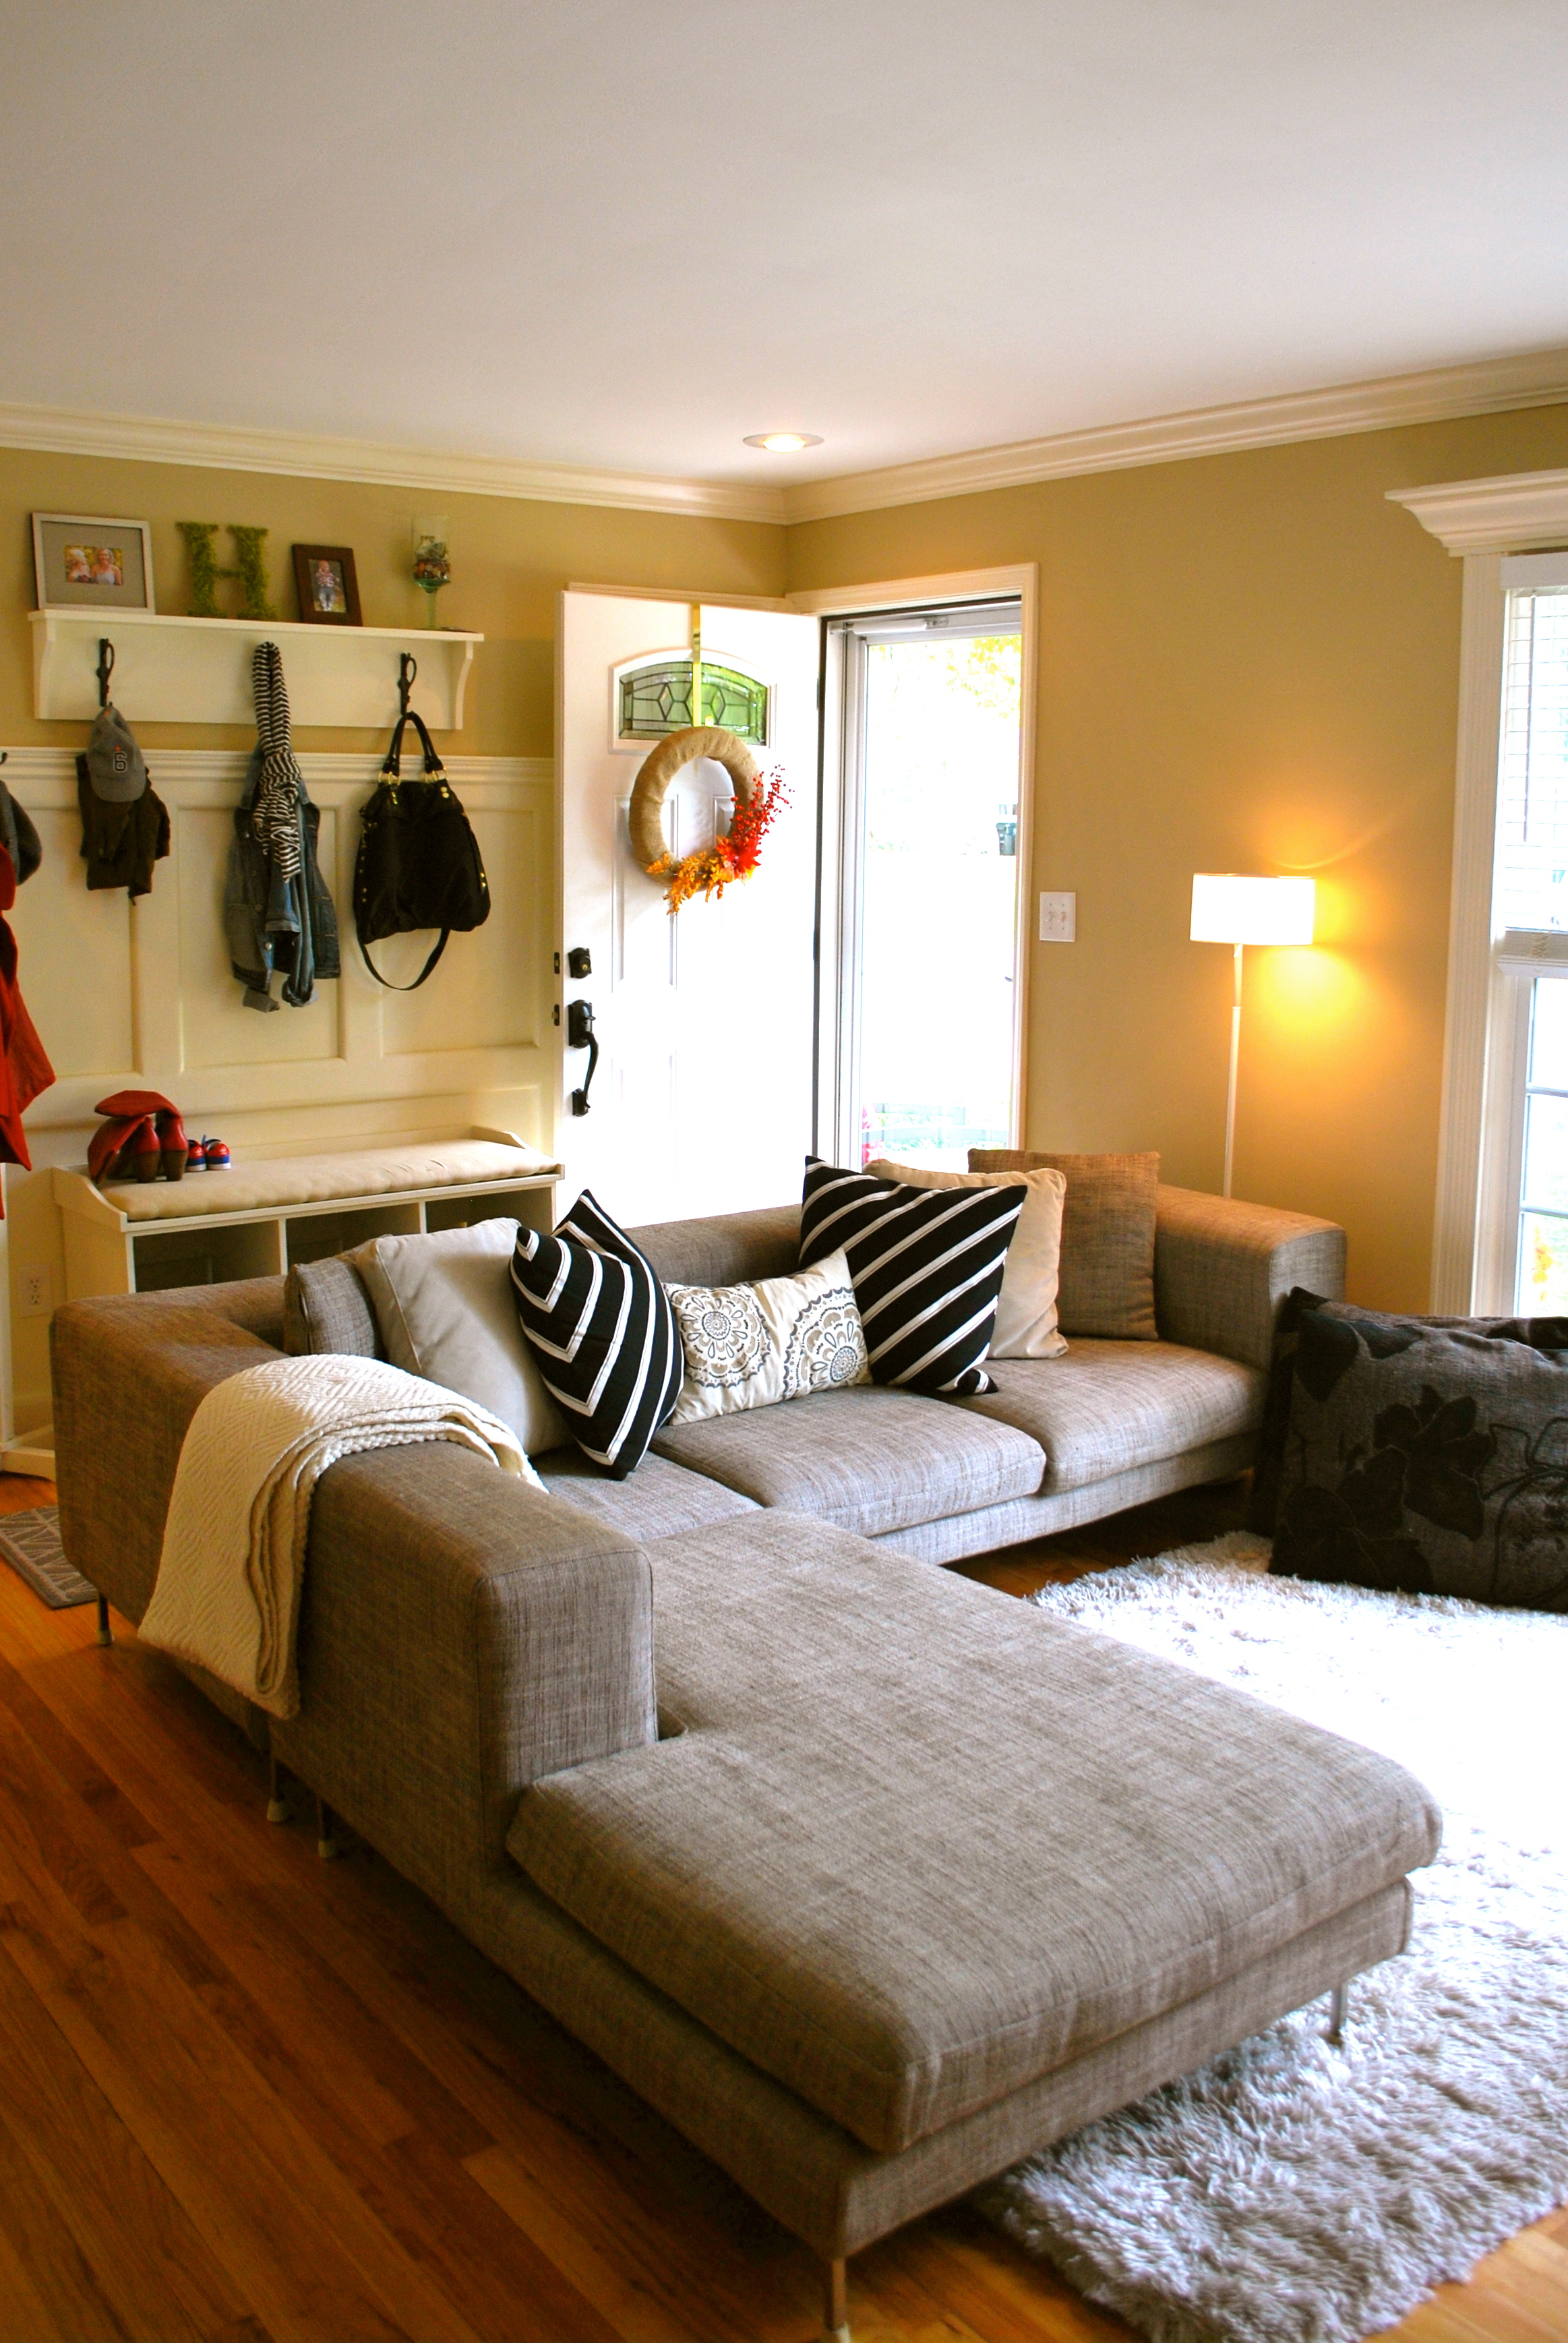 Decorate Small Living Room: The Suburban Urbanist